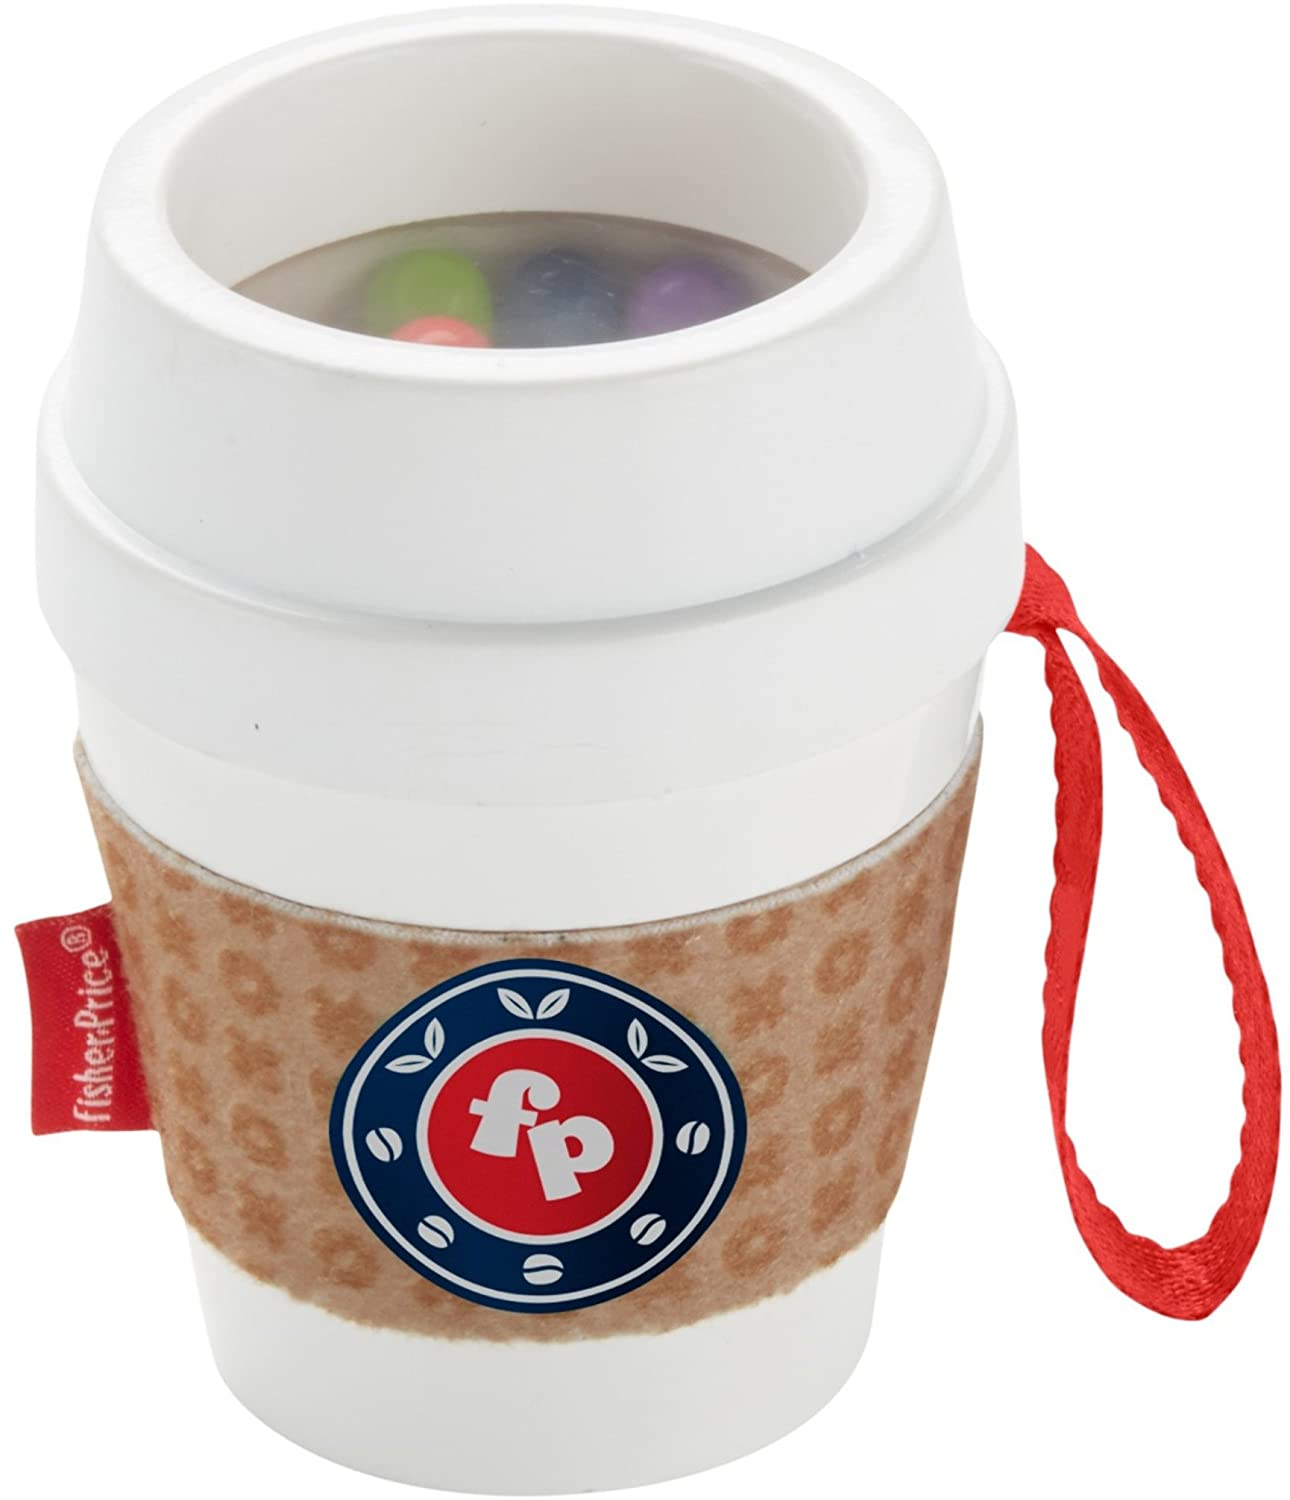 Multi-Colour Fisher-Price DYW60 Coffee Cup Teether